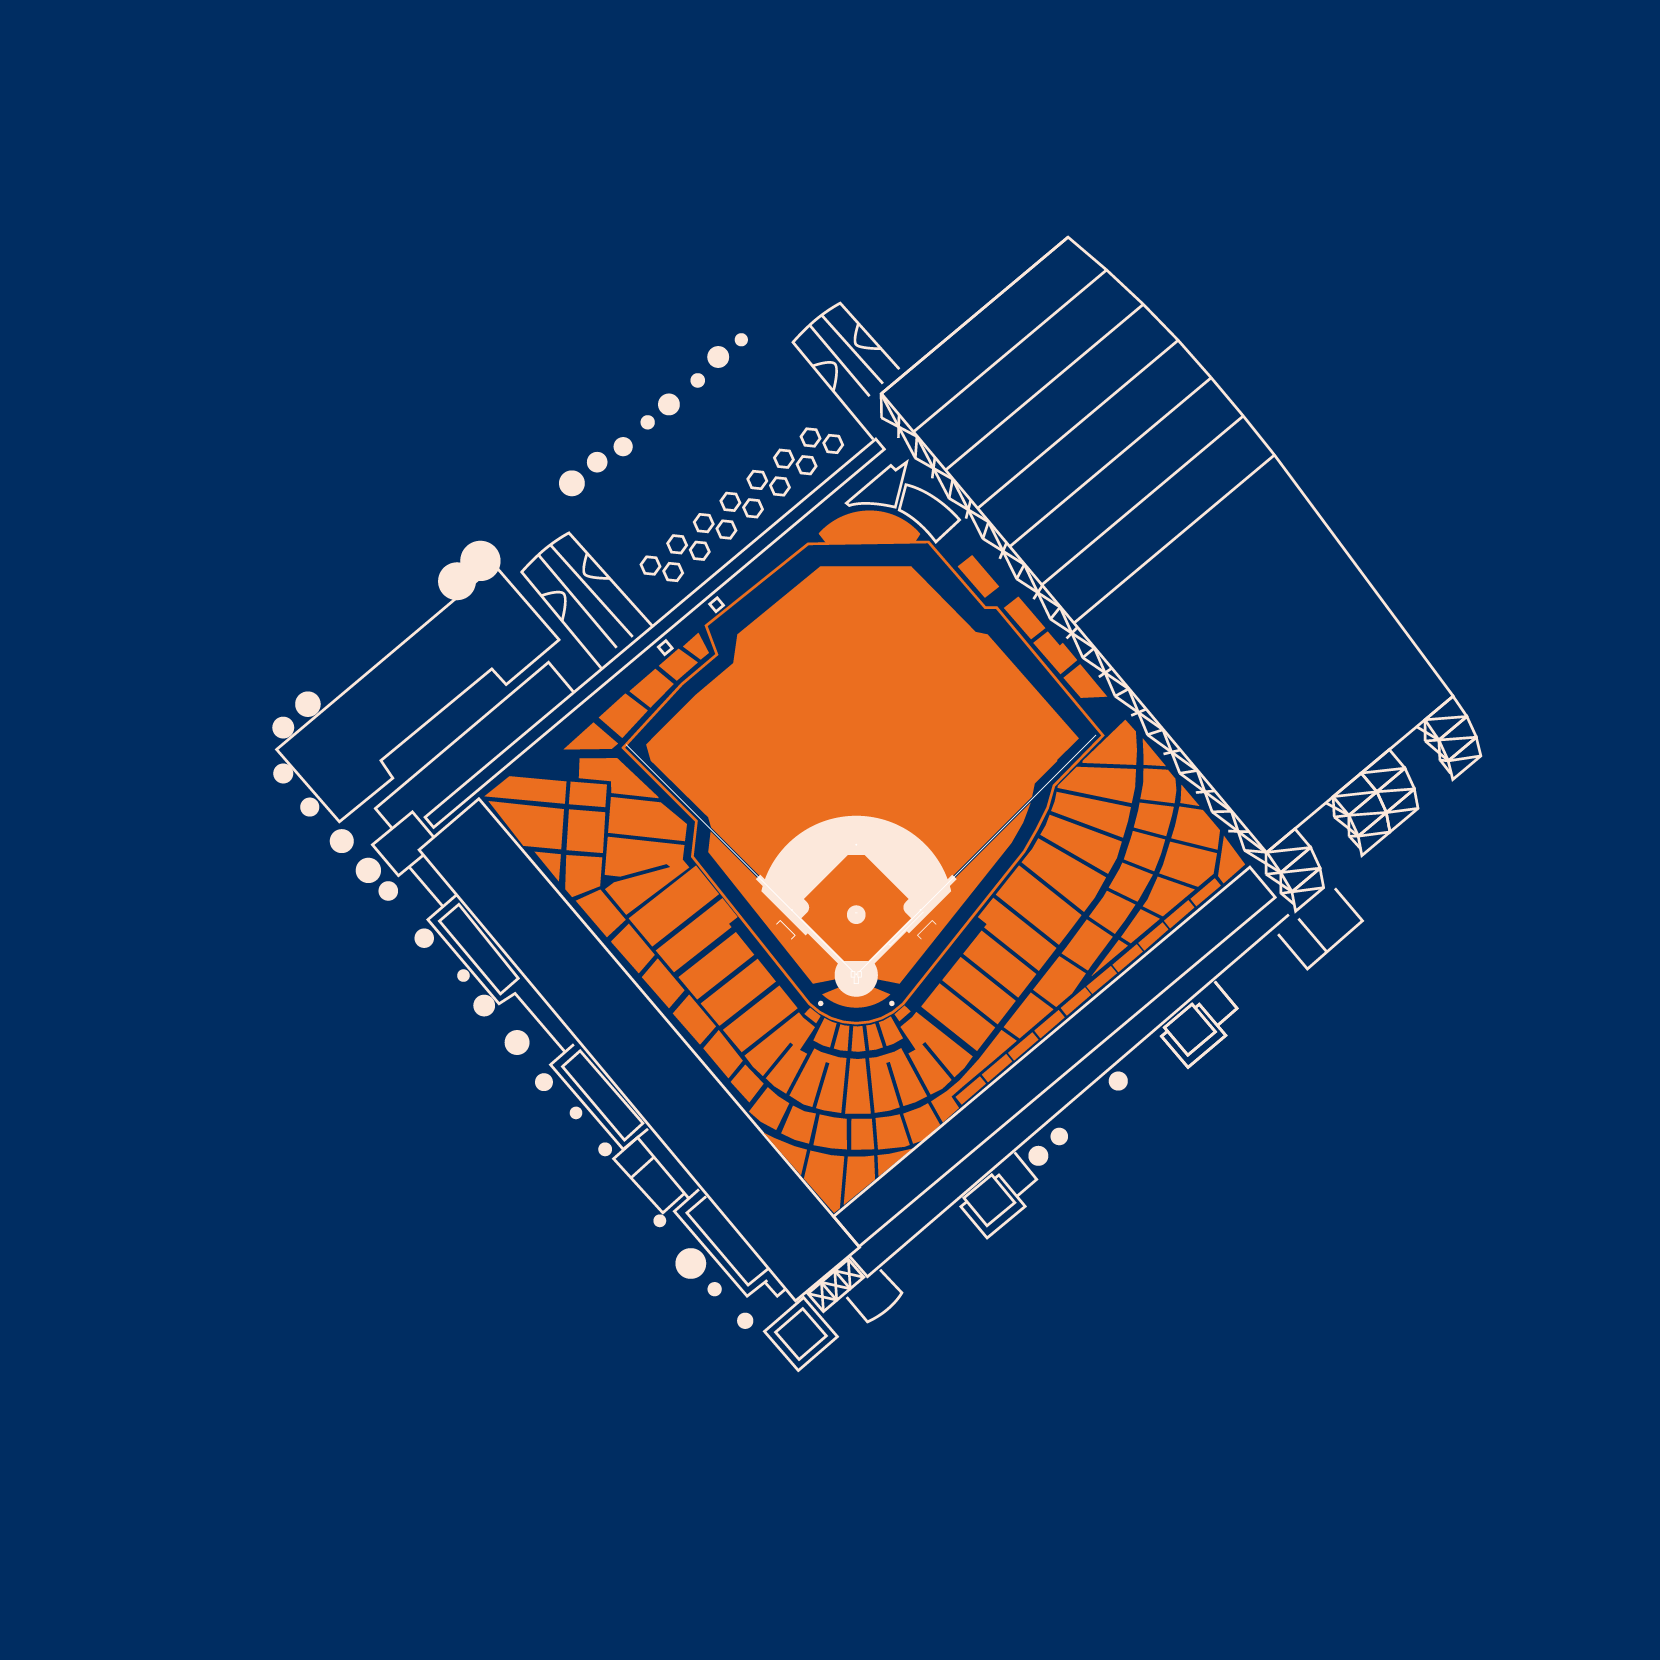 21 Minute Maid Park Houston Astros.png